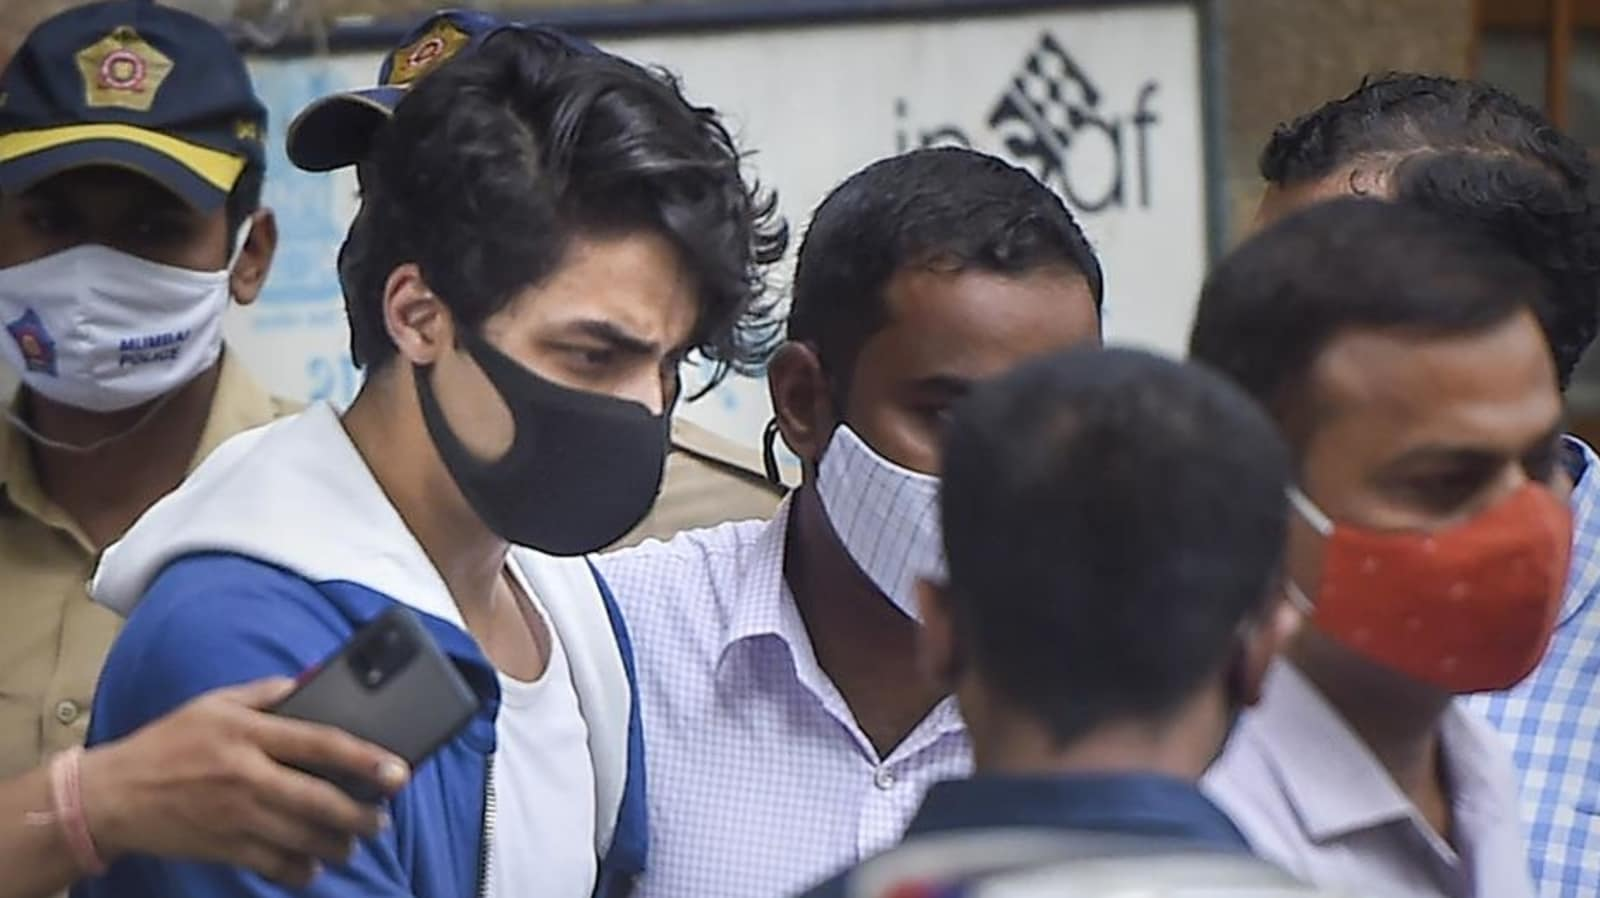 No recovery, chats not proof: Aryan Khan's lawyers